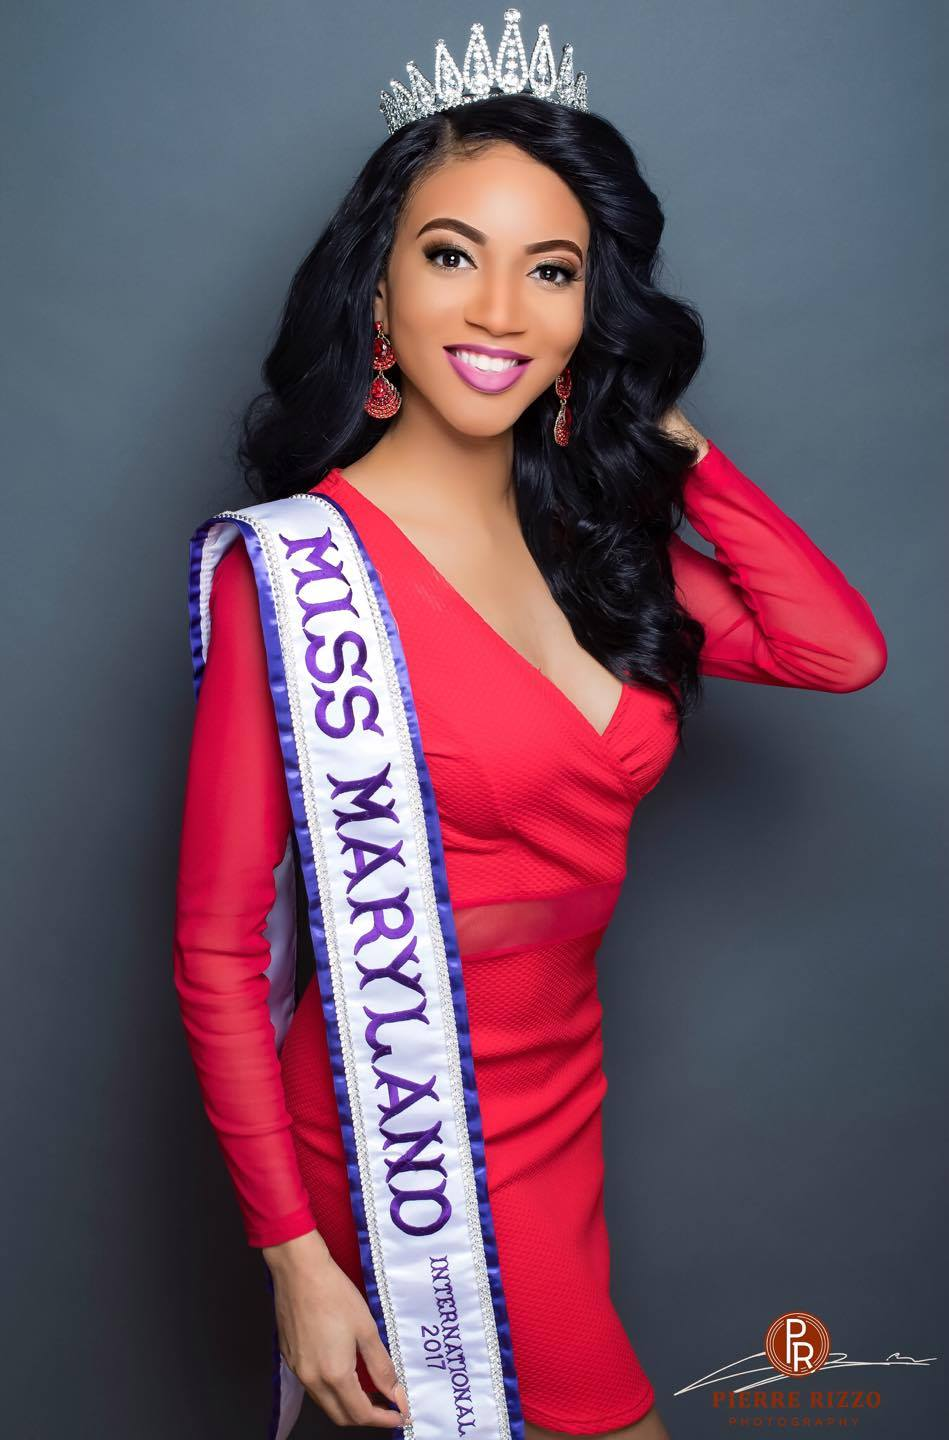 Miss Maryland International